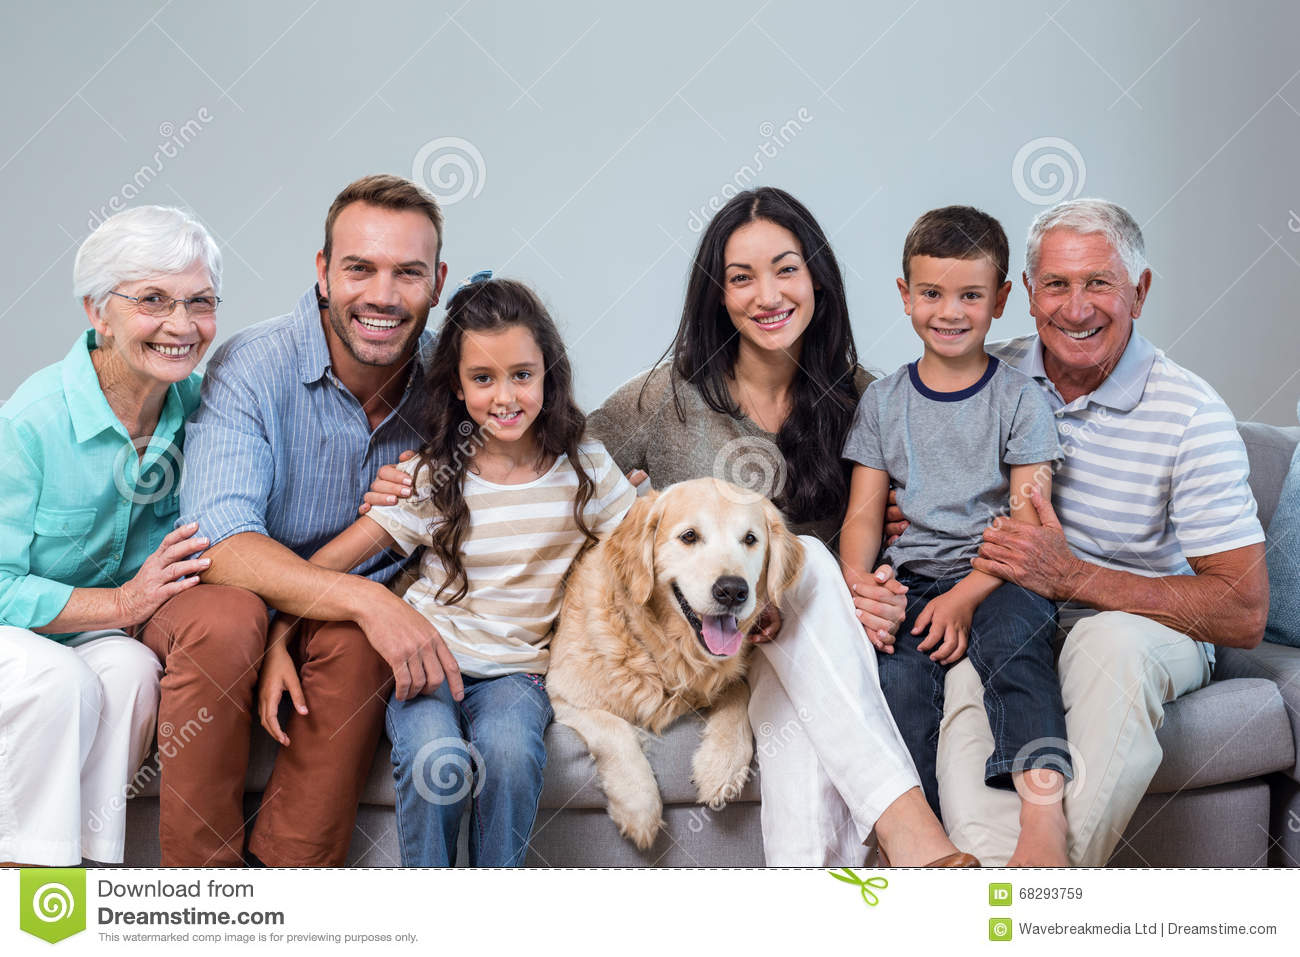 Family sitting on sofa with dog